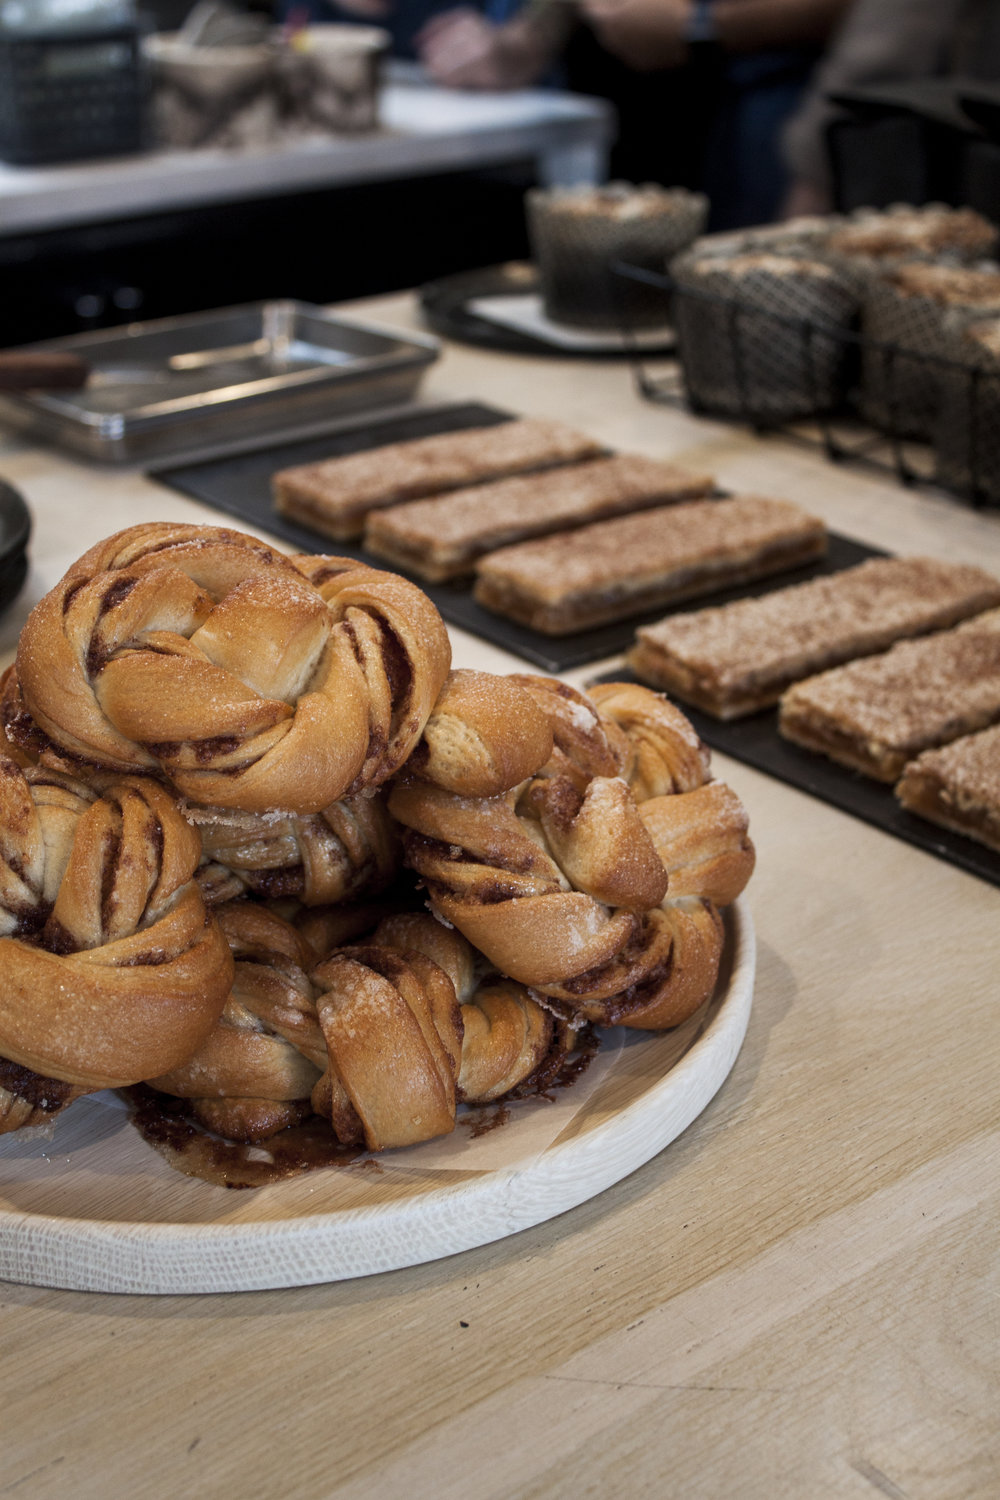 Destroyer Culver City is the newest project from Chef  Jordan Hahn, previously of Red Medicine Beverly Hills. This is one of the best breakfasts in LA, with freshly baked pastries lining their counter.